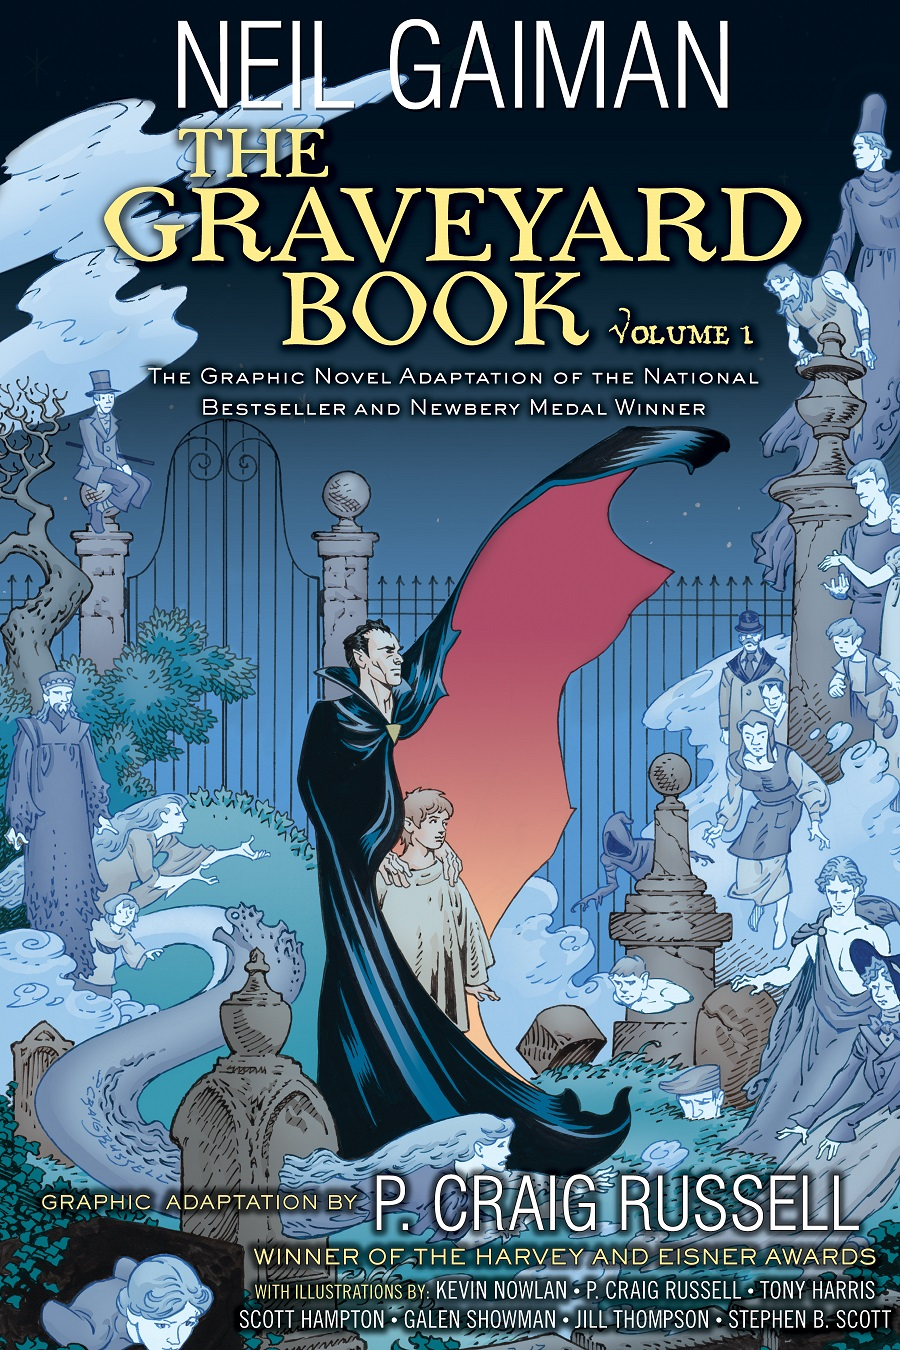 Graveyard Book Graphic Novel vol 1